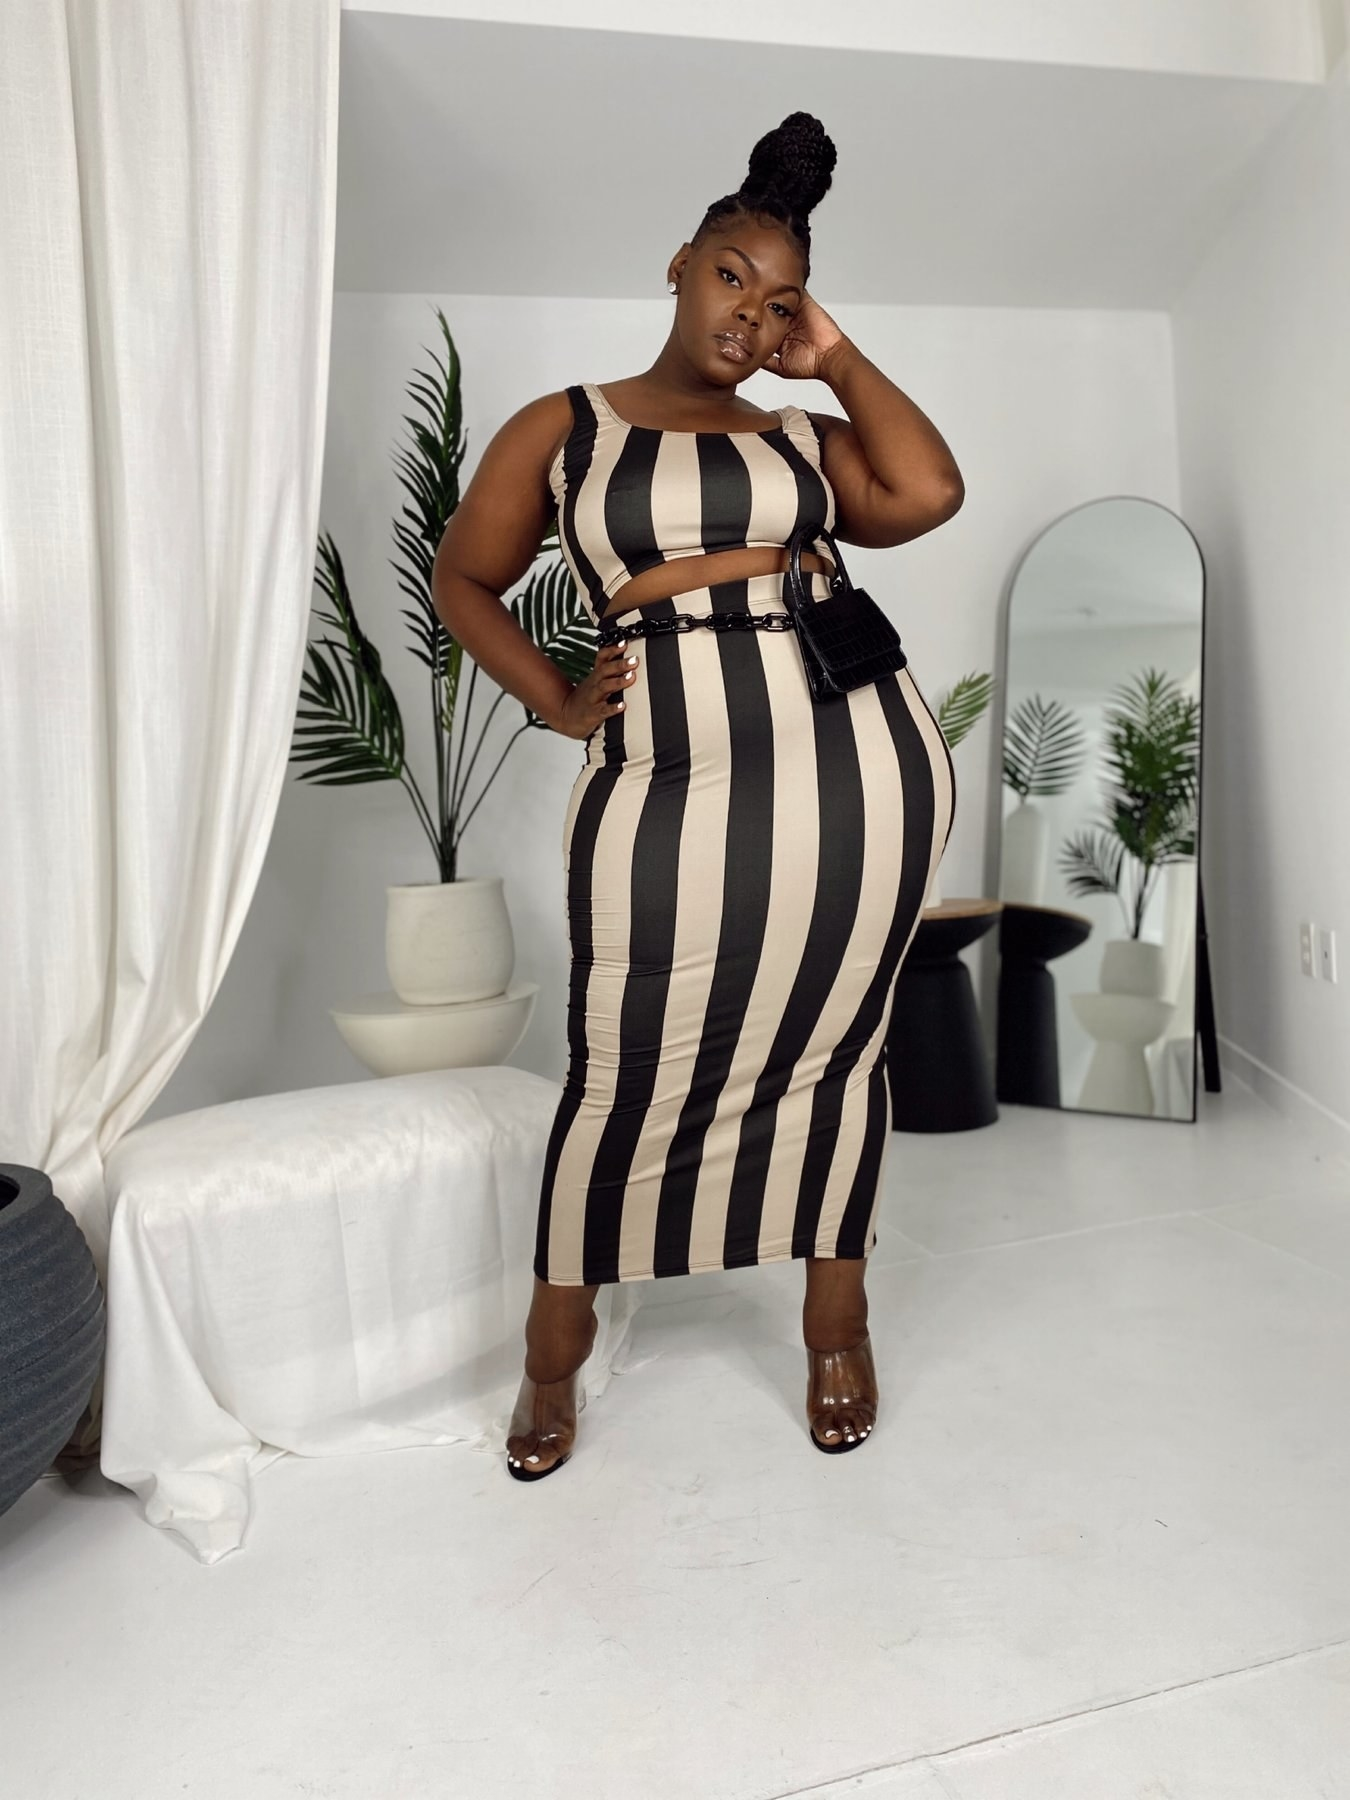 model wearing cropped tank and skirt set in black and tan vertical stripes